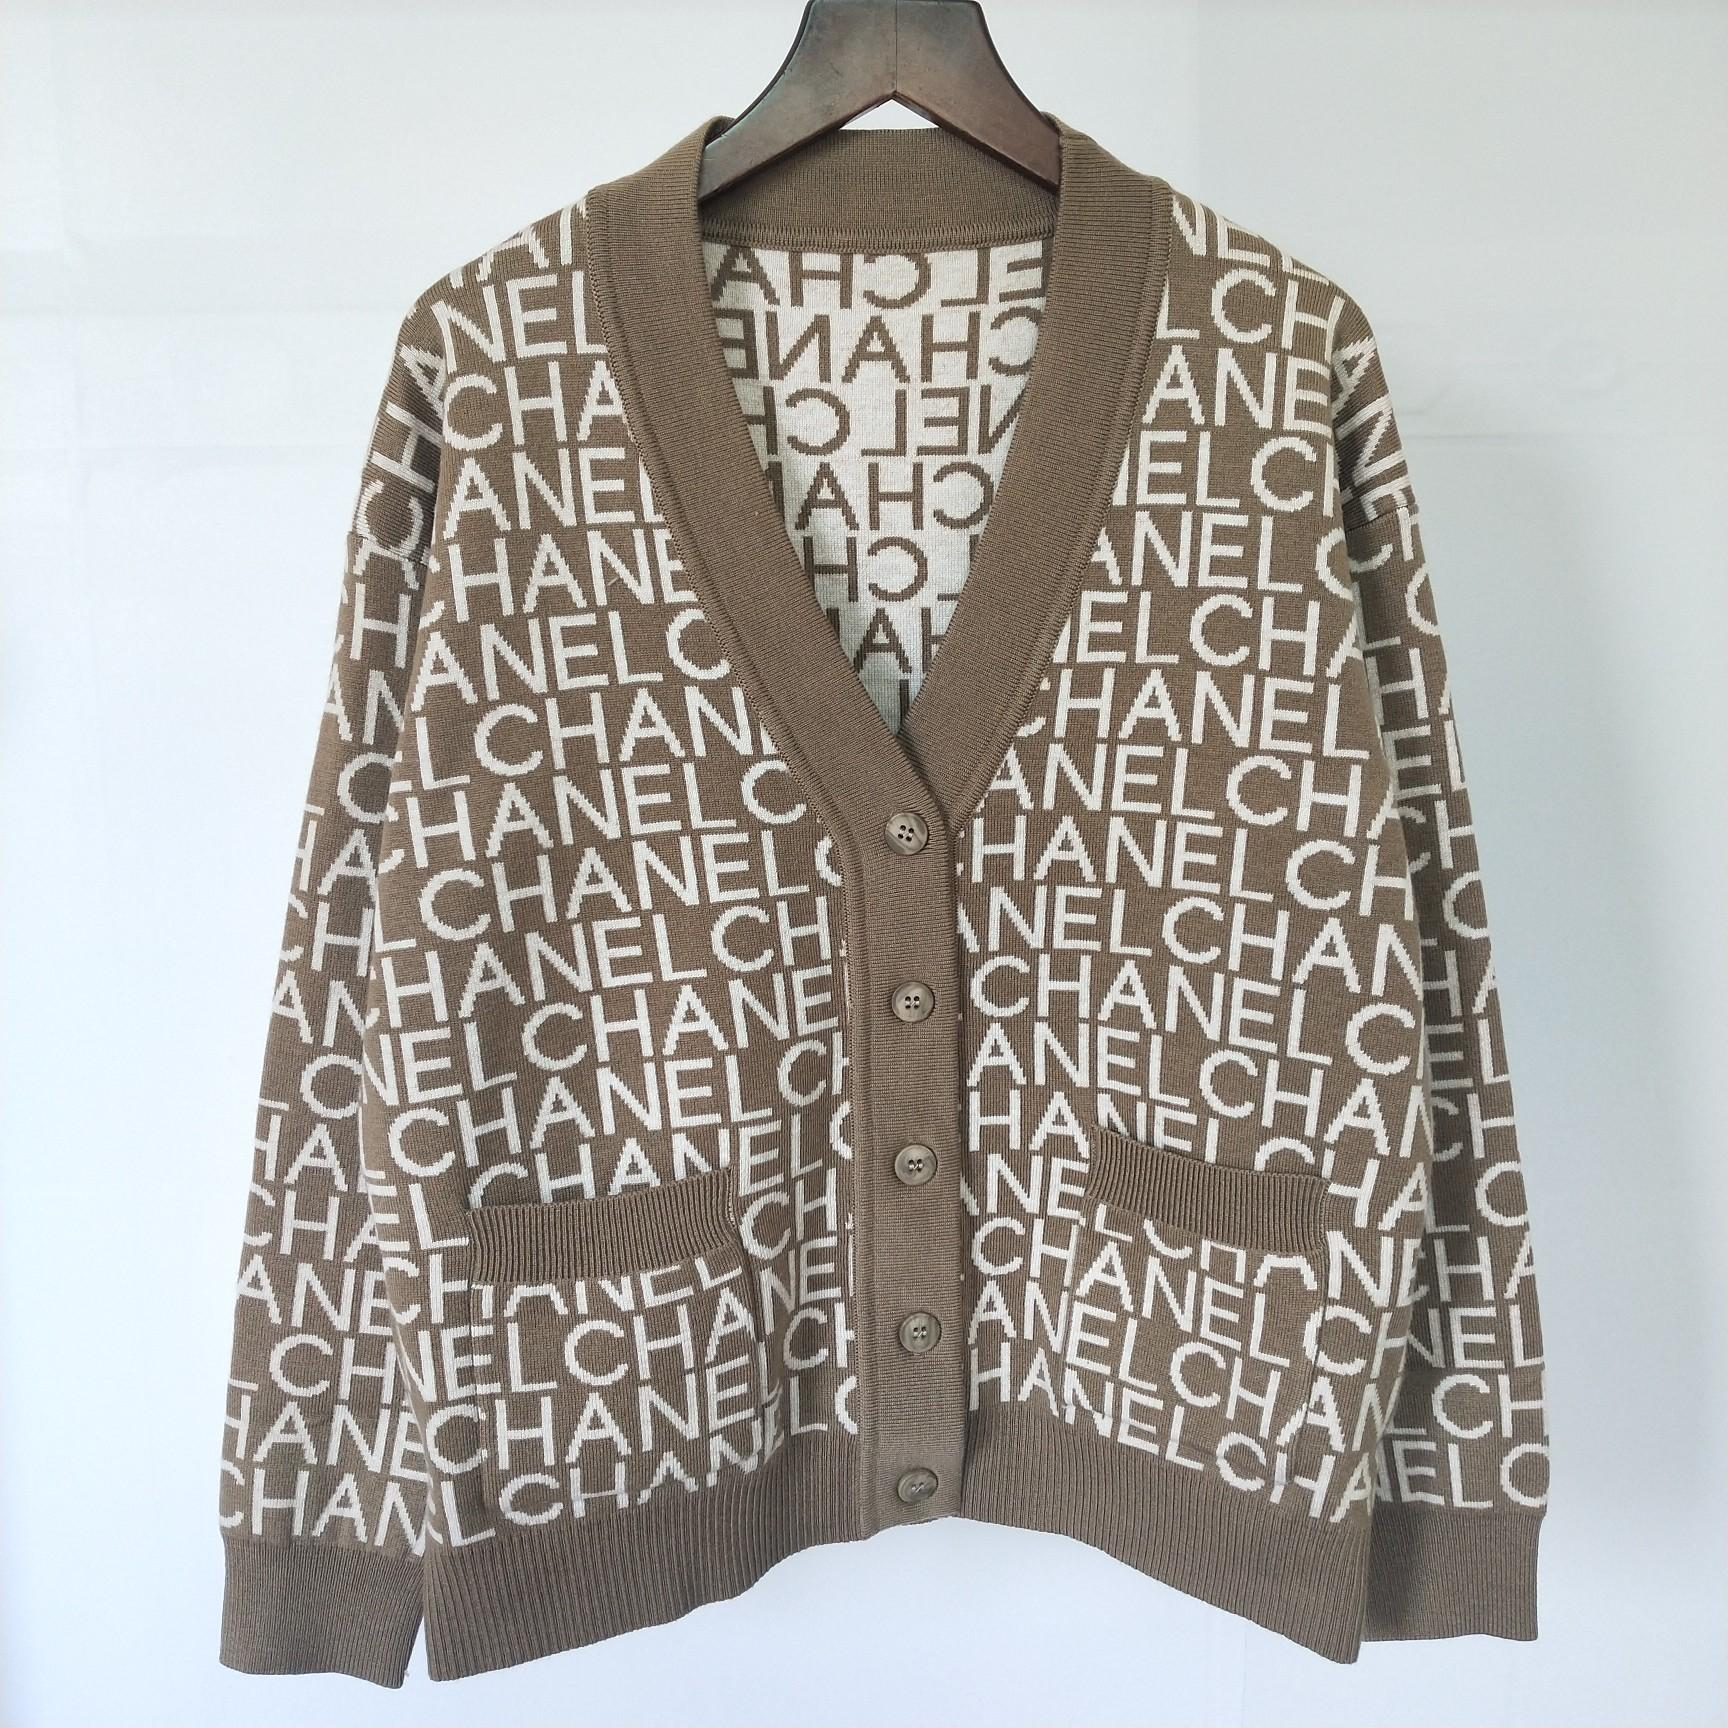 New Cardigan for Autumn Winter